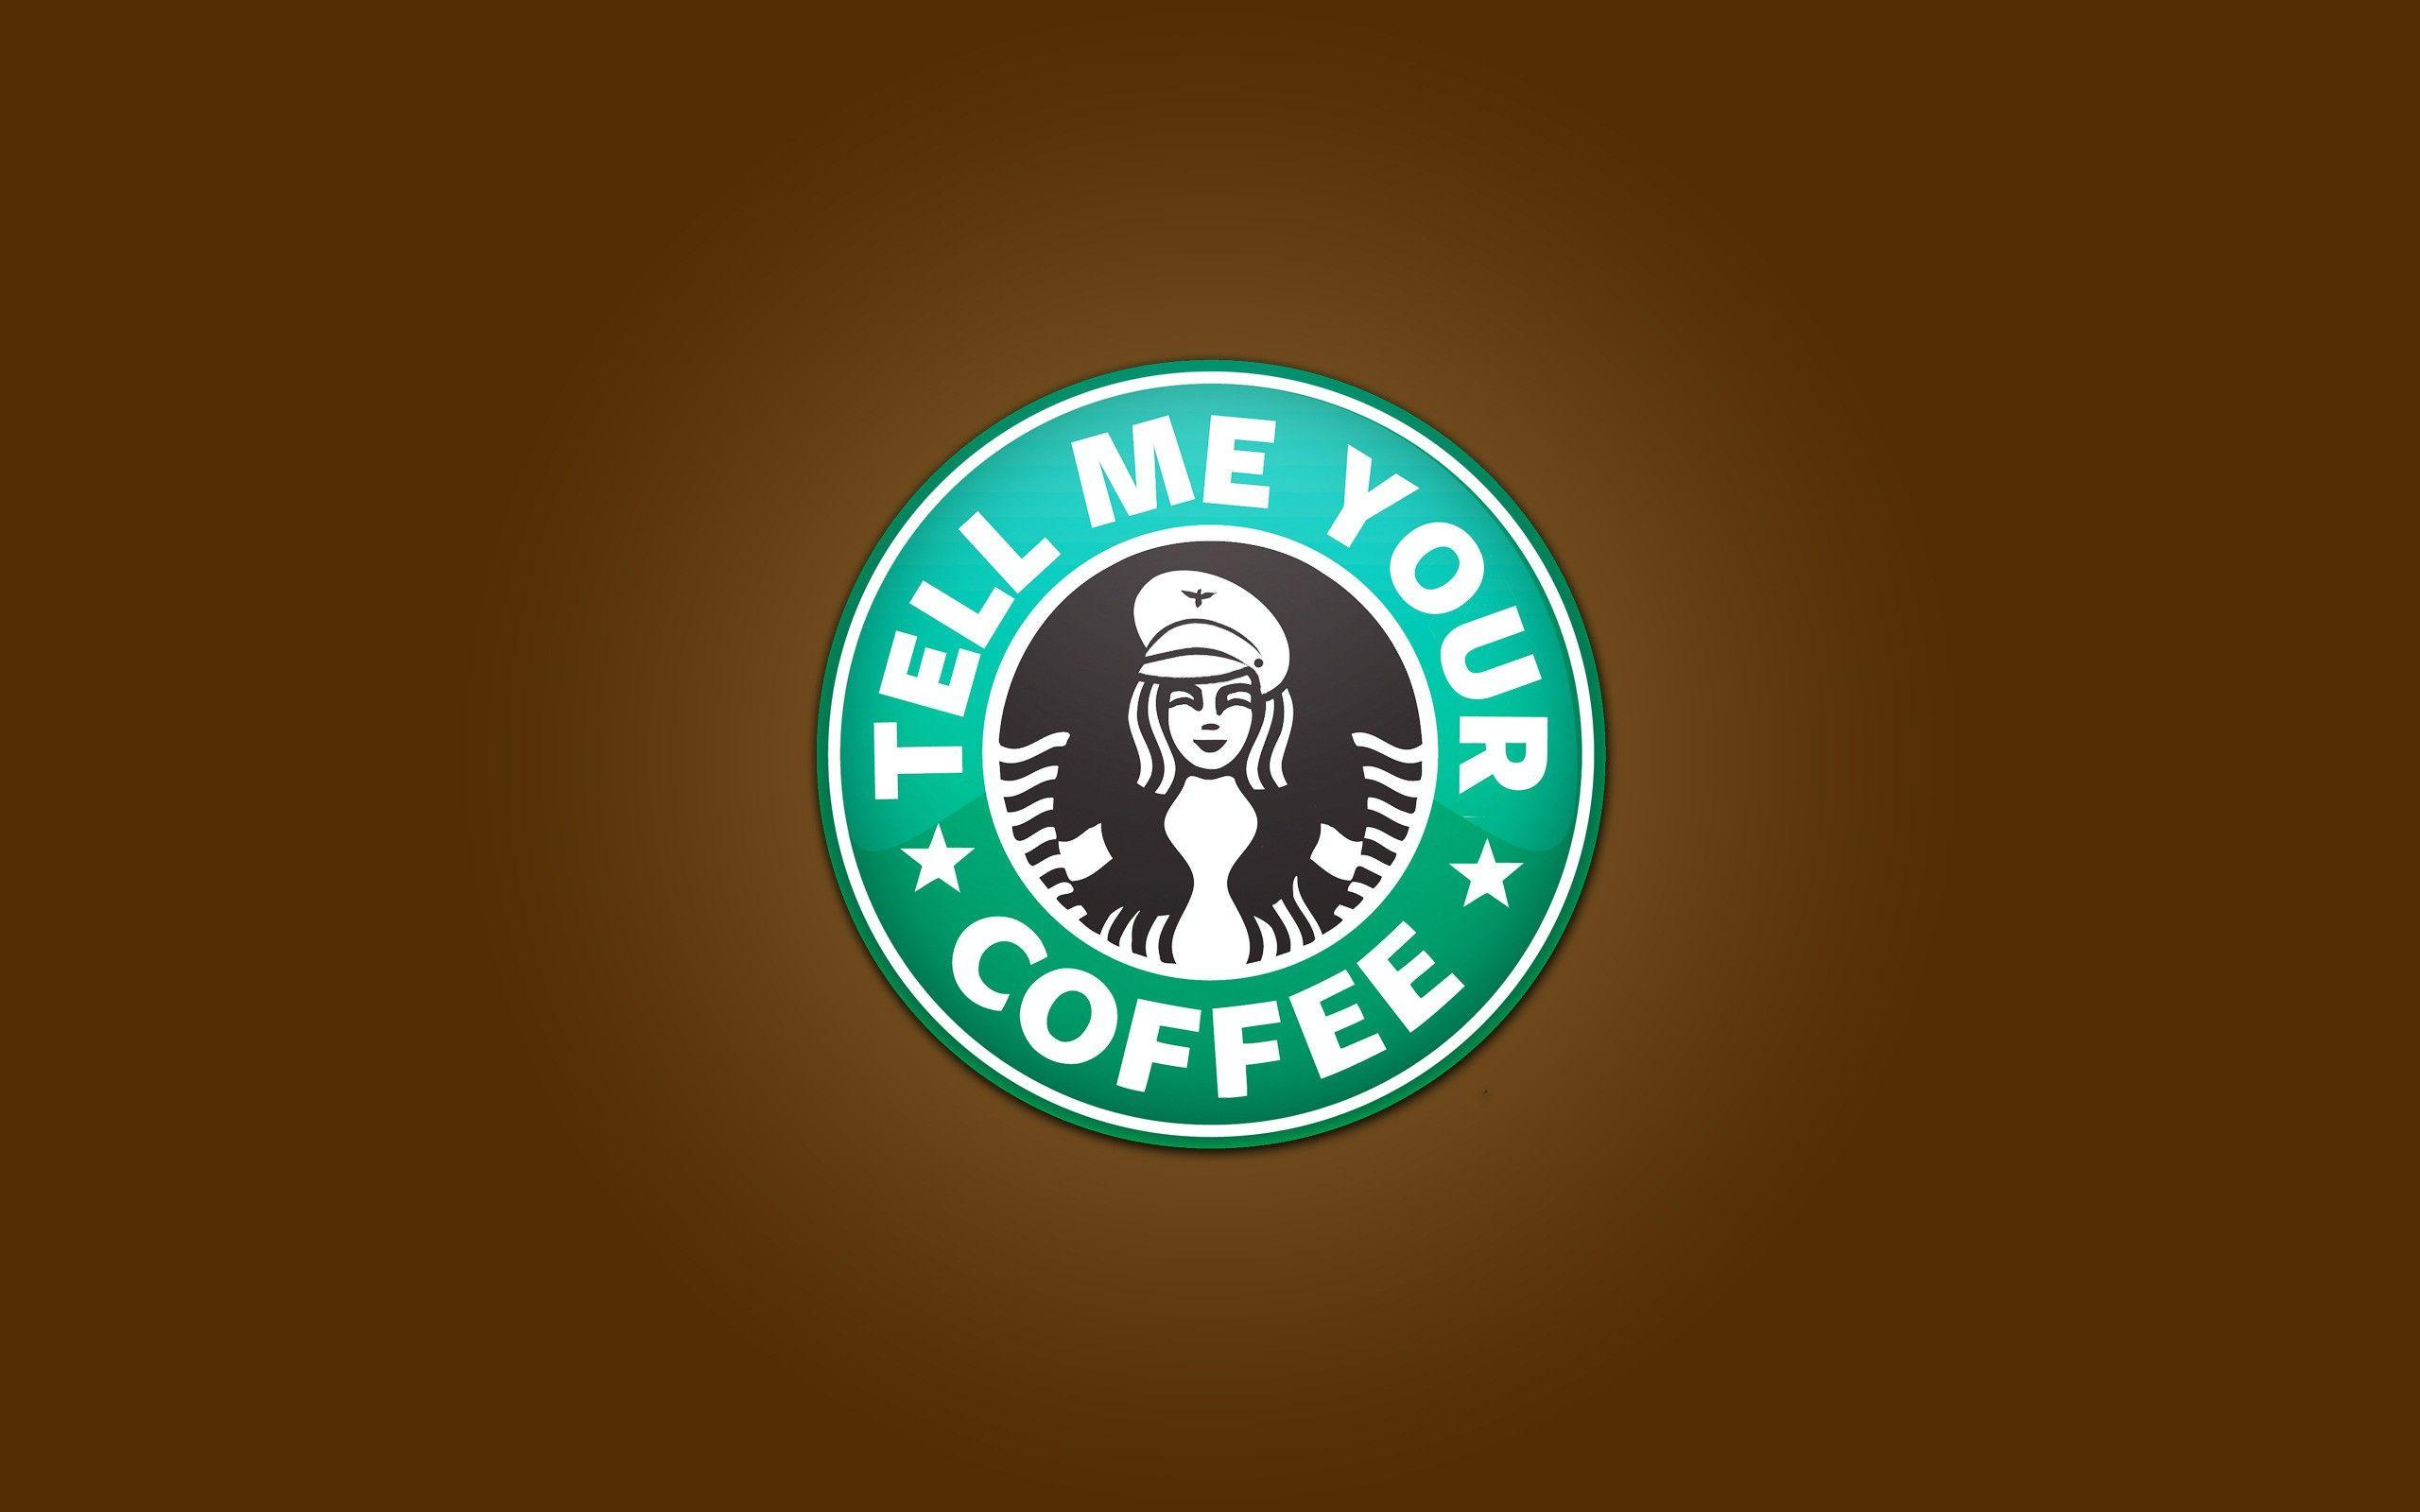 Starbucks Tumblr Background Wallpaper - HDwallshare.com